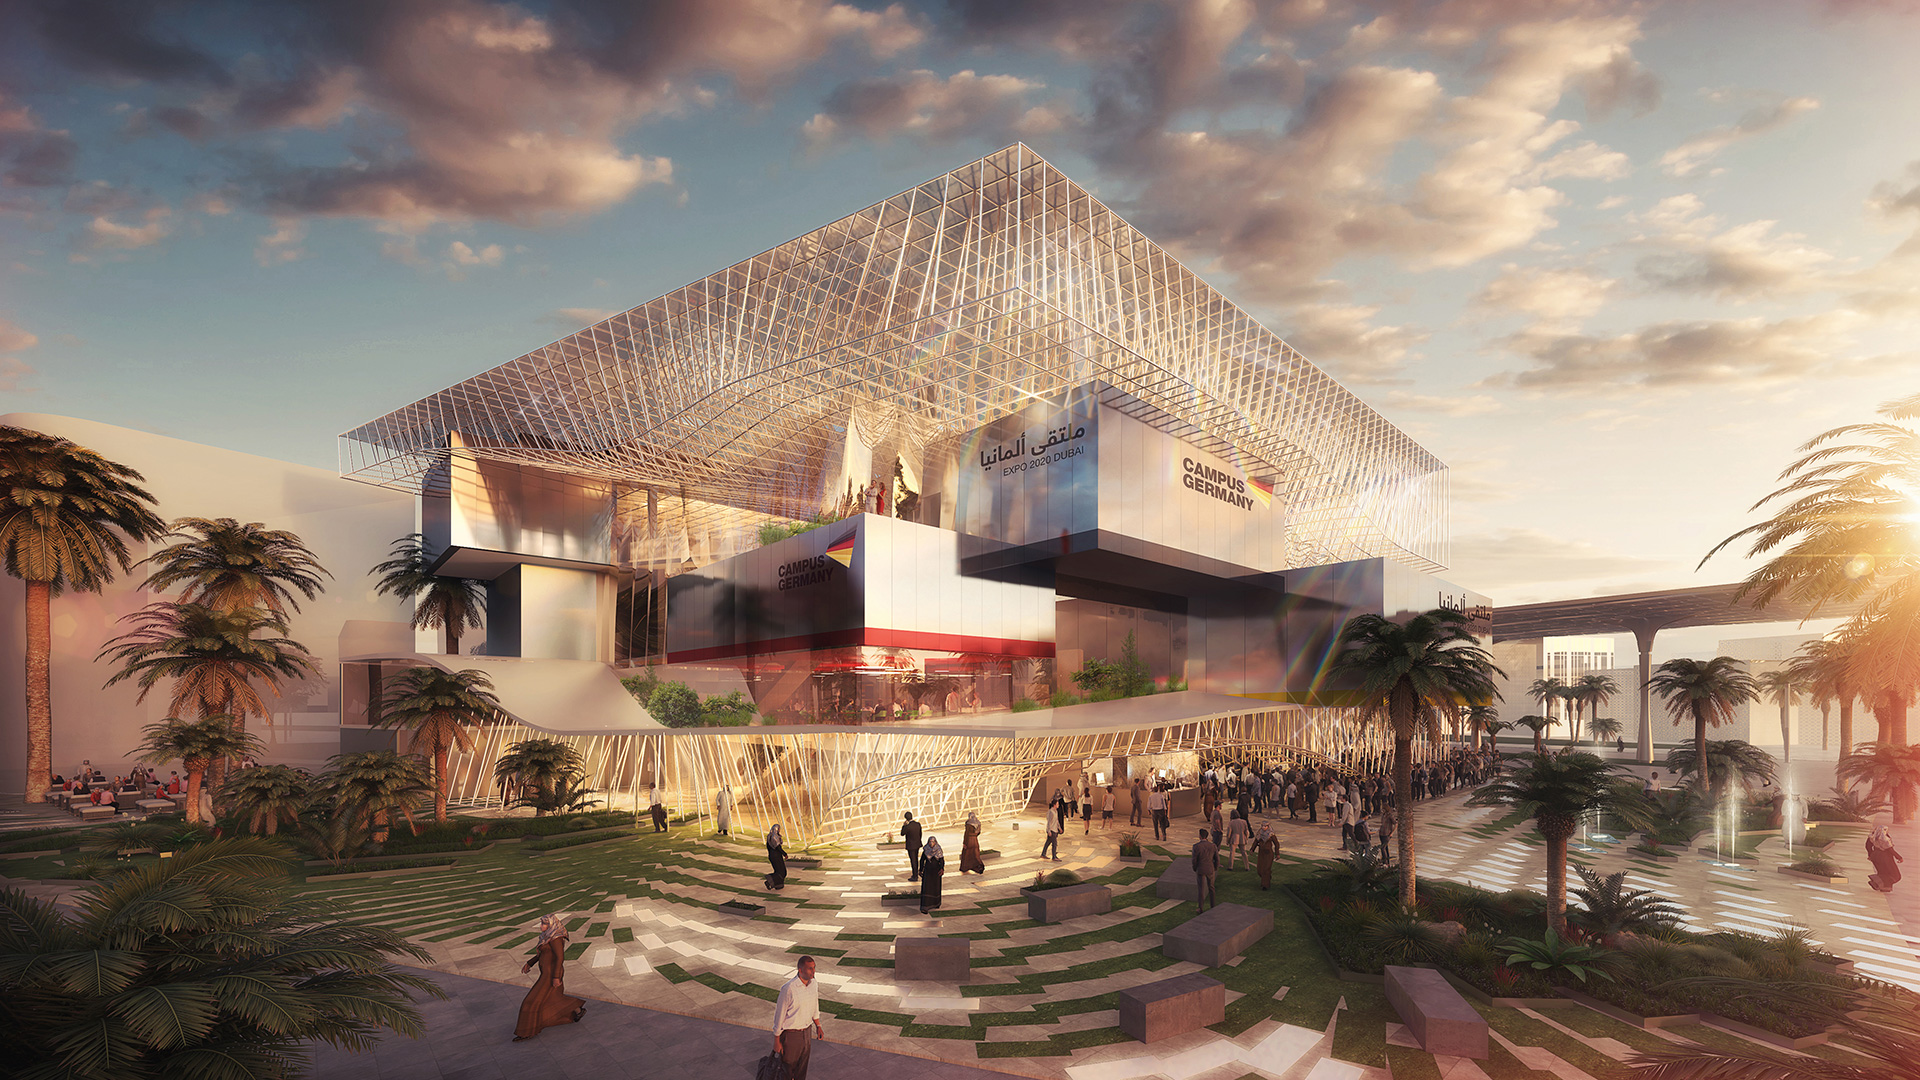 The Germany Pavilion designed by LAVA with Facts and Fiction | Sustainability | Pavilion | Expo 2020| Dubai| STIRworld